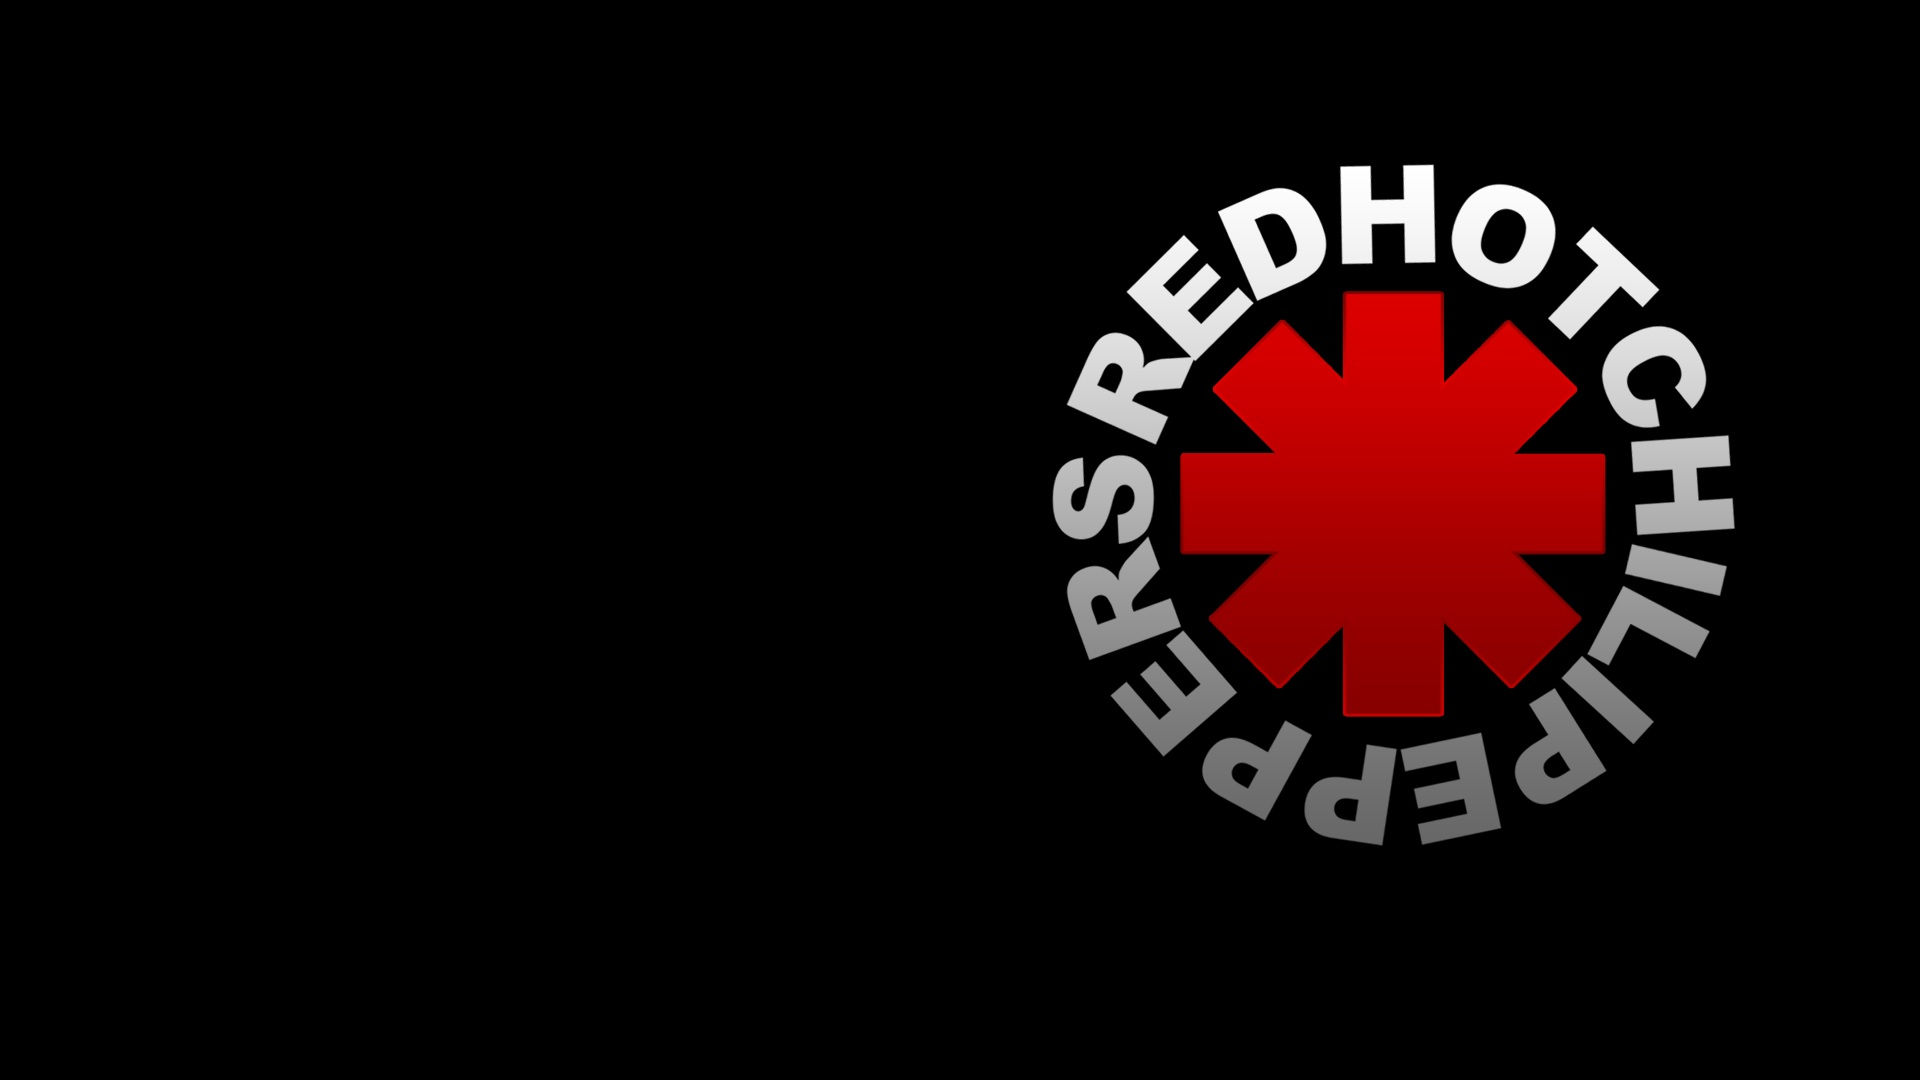 Red Chili Peppers Wallpaper